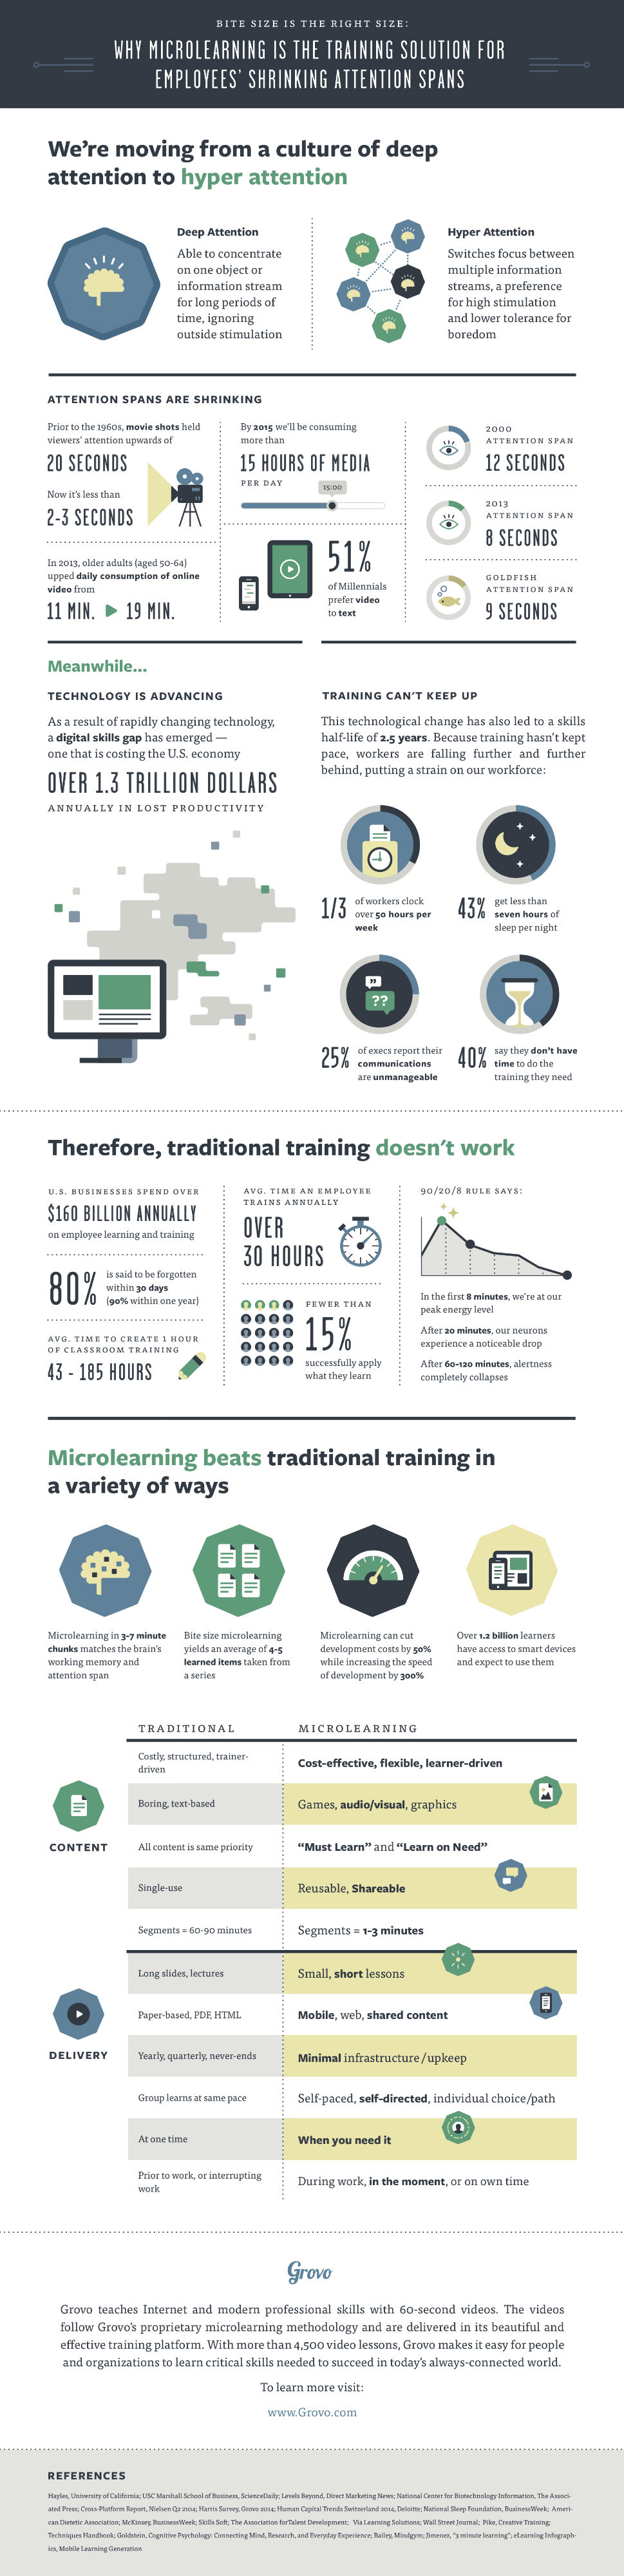 Why-Microlearning-is-the-Training-Solution-infographic-by-Grovo 2